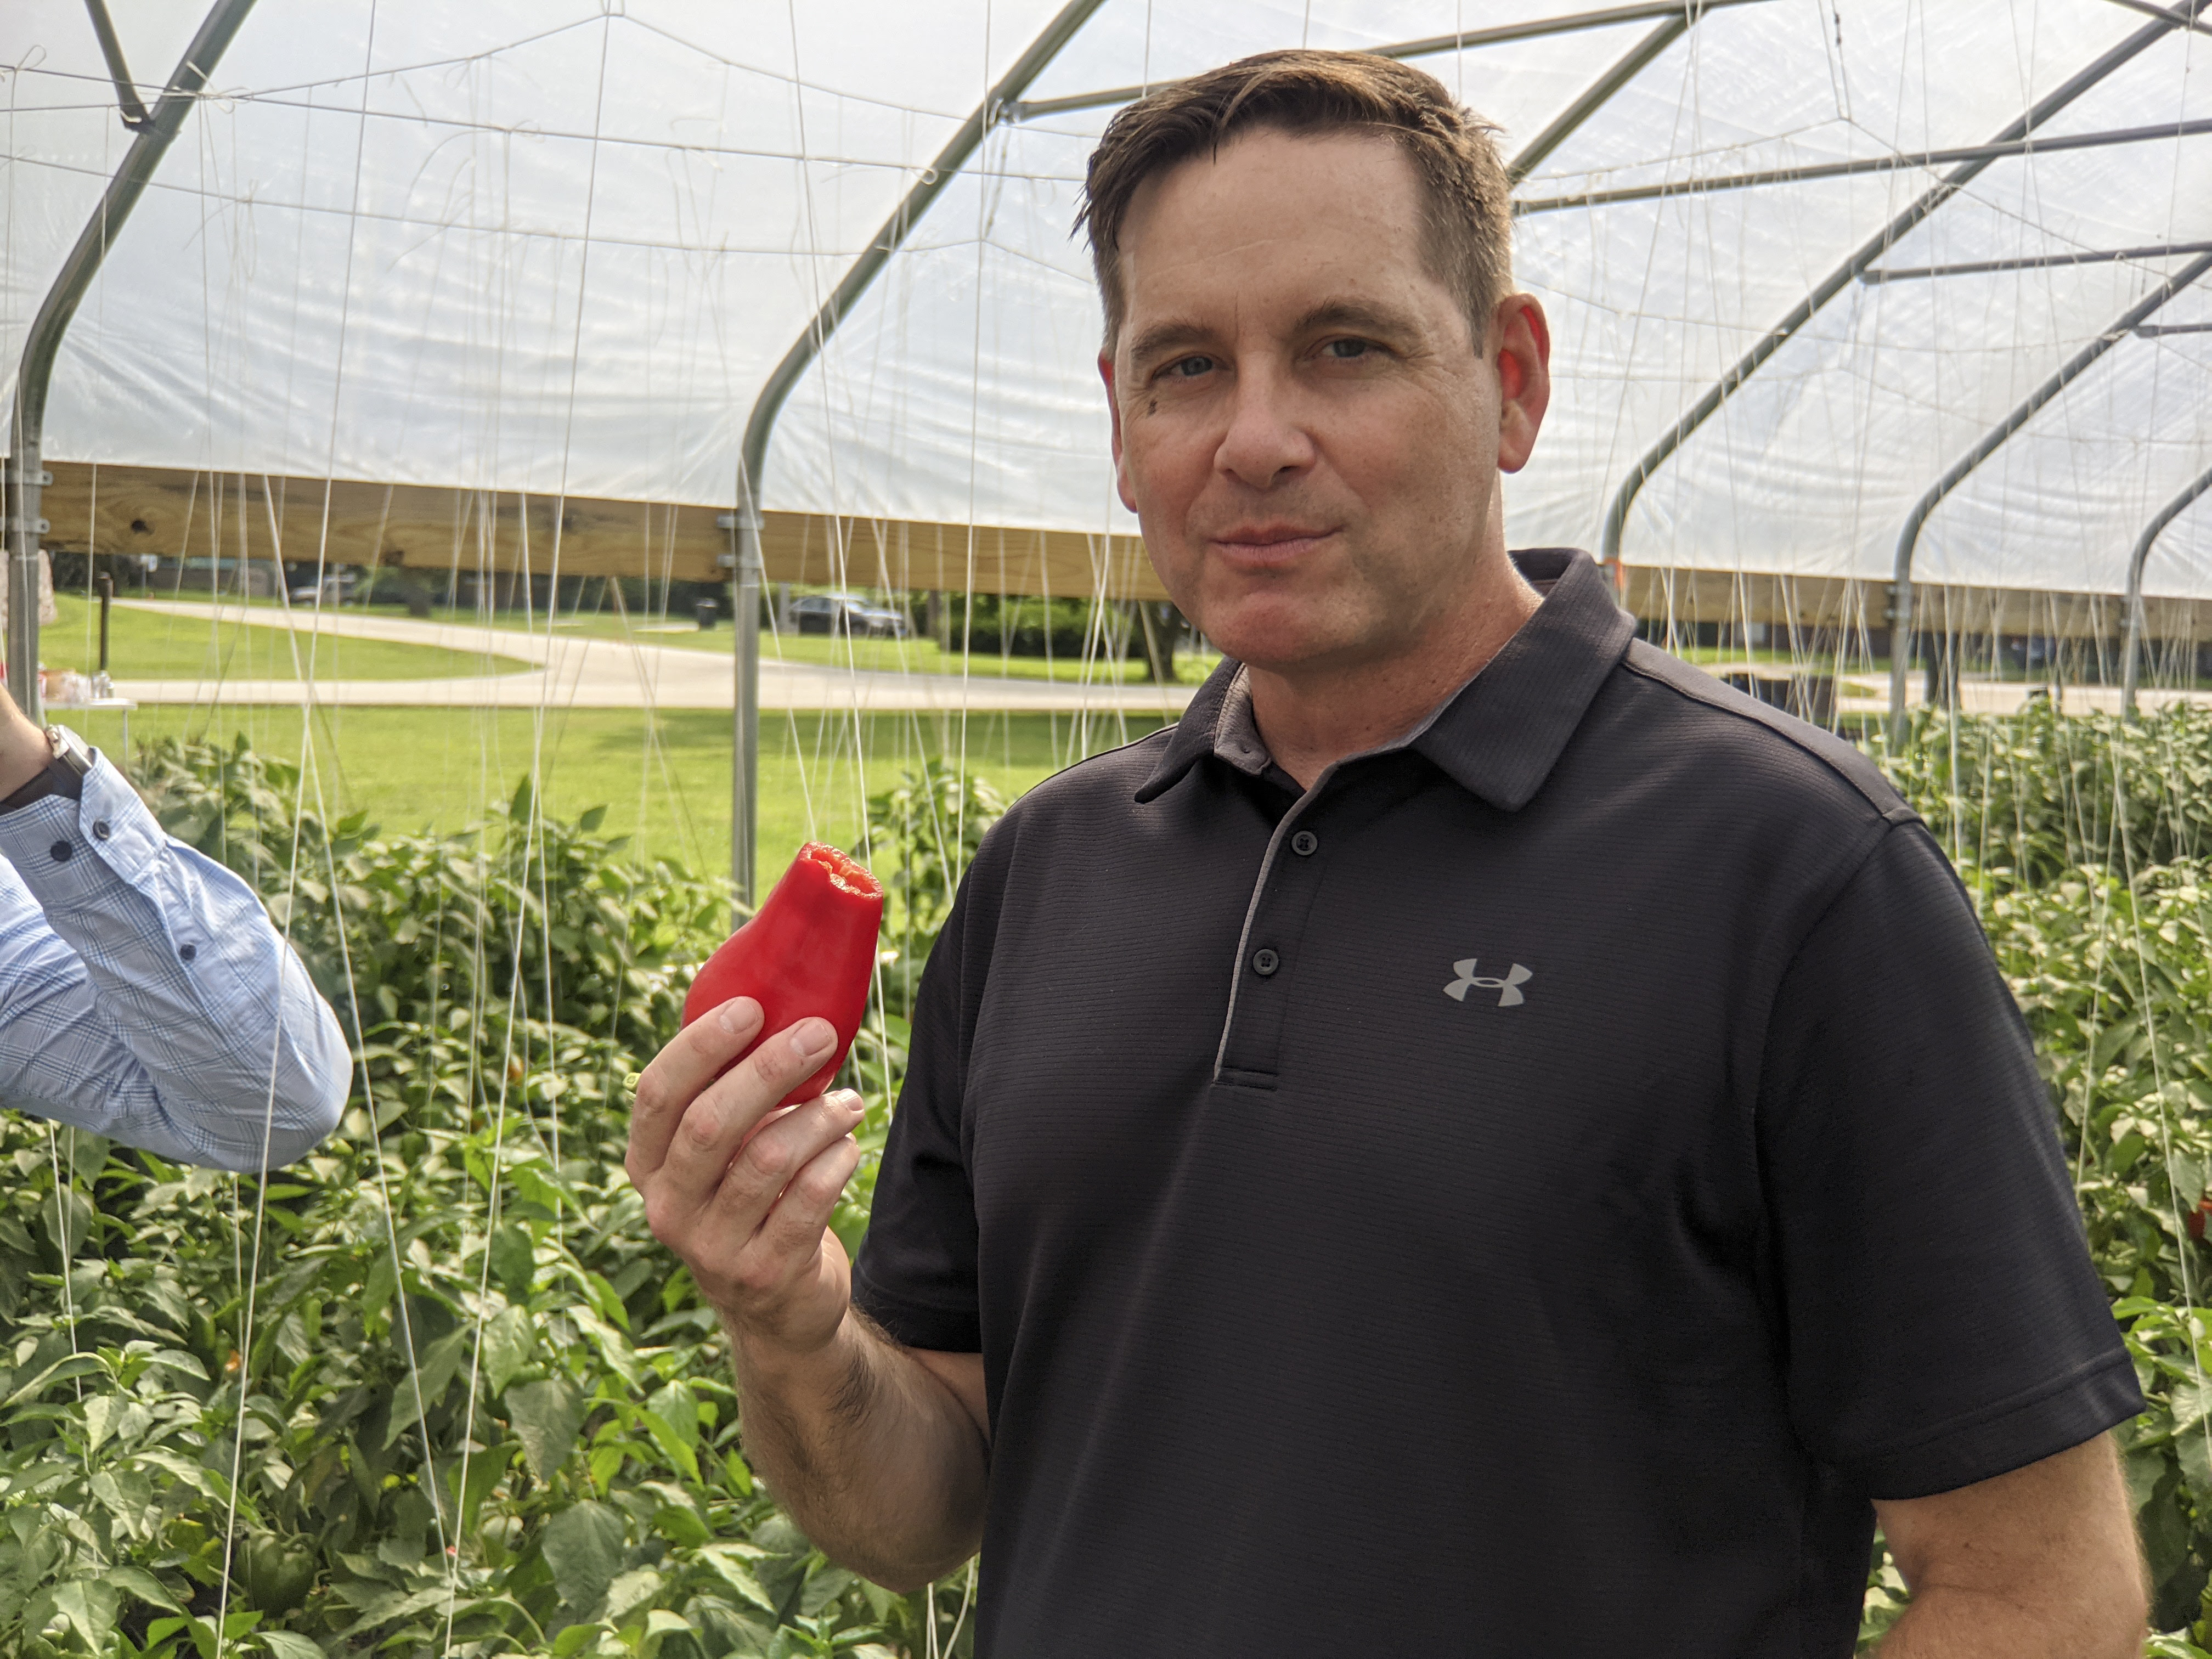 State Rep Tim Butler smiles at the camera after a tasty bite of sweet red pepper grown in the hoop house he's photographed in.